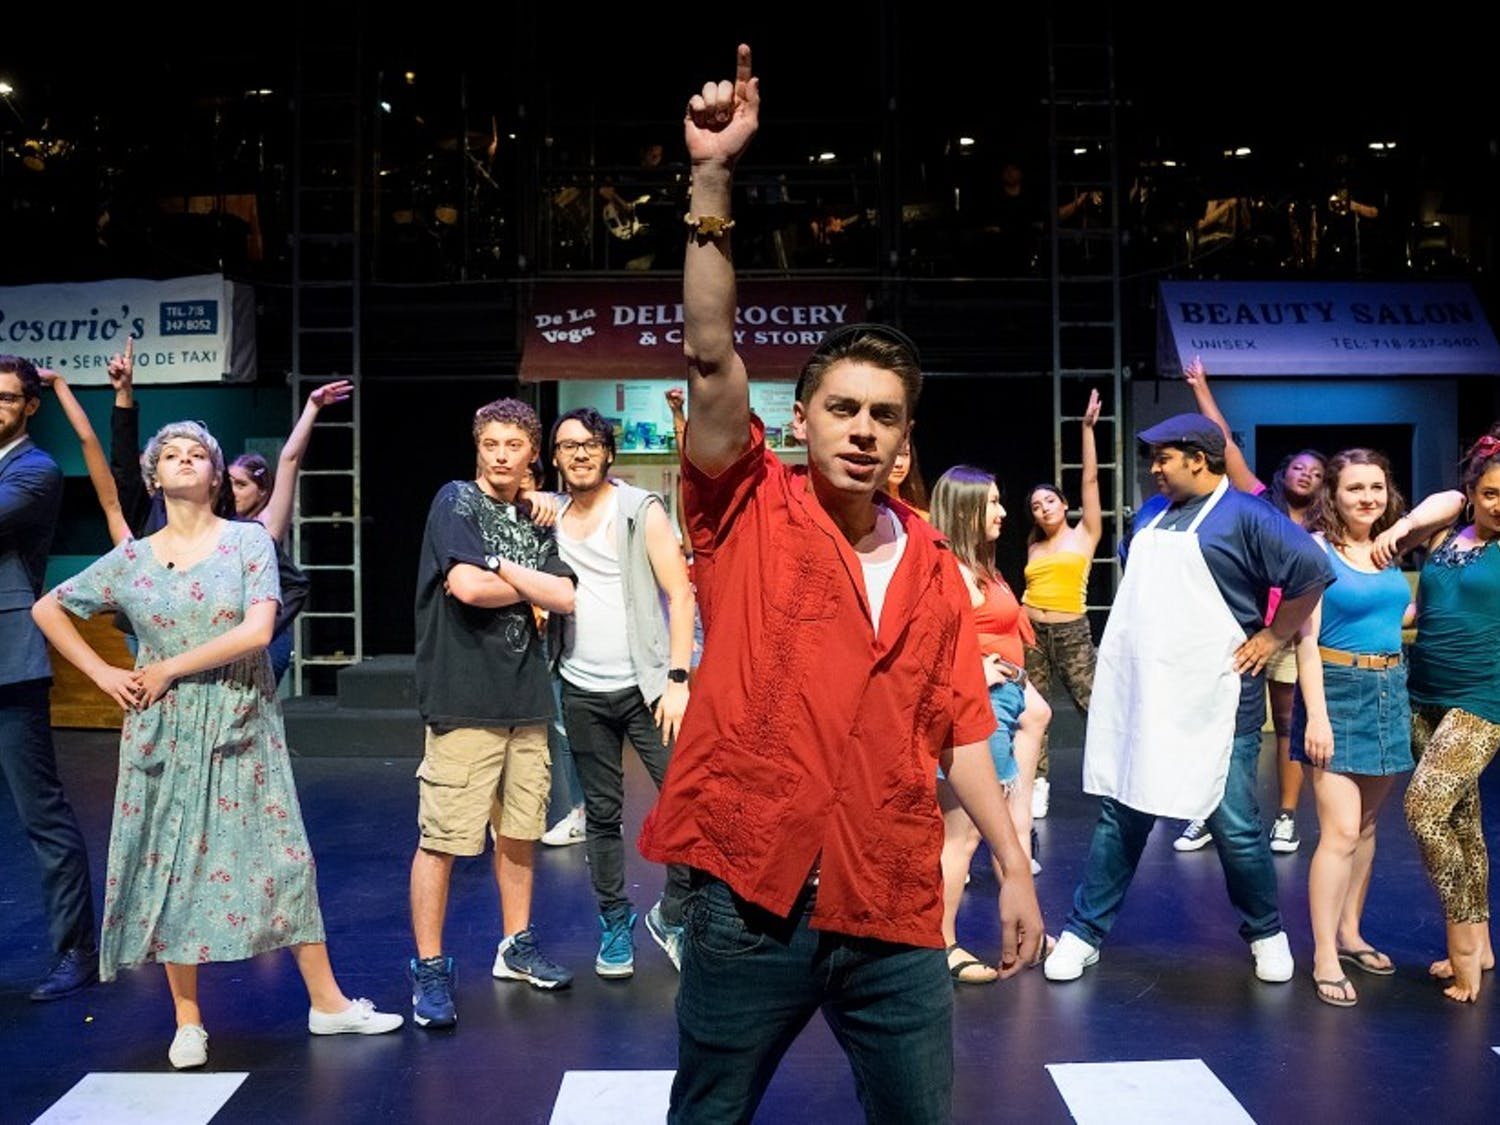 """Hoof 'n' Horn's """"In the Heights"""" runs through April 20 at the Rubenstein Arts Center."""